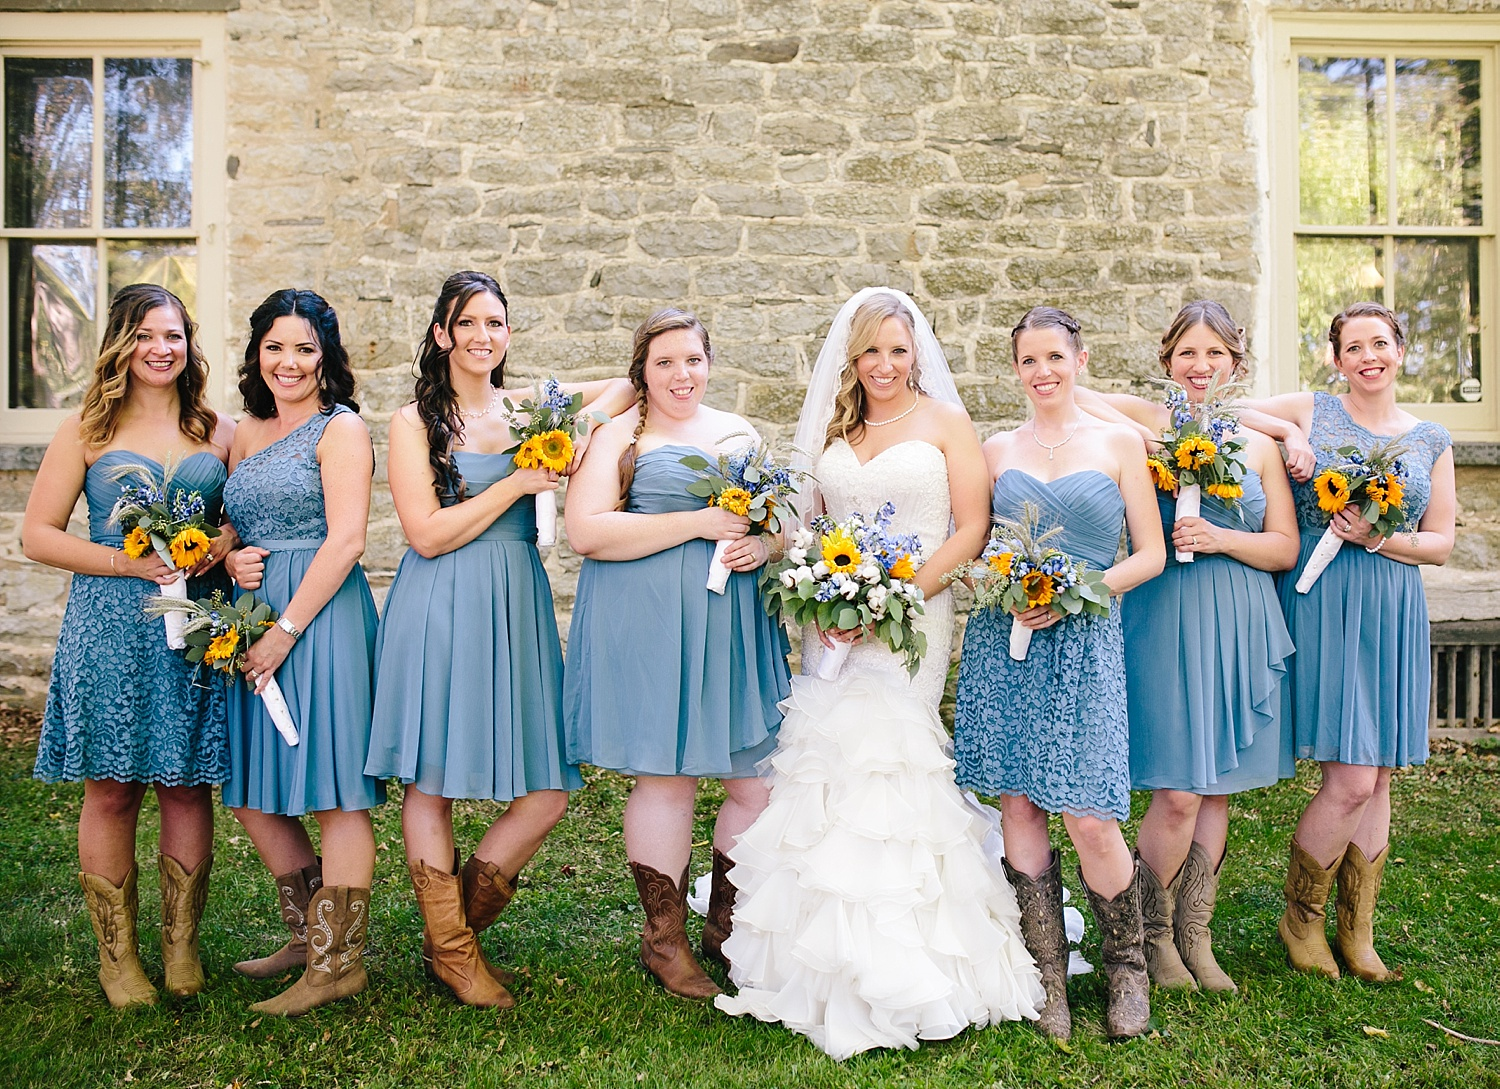 jennyryan_newbeginnings_farmstead_upstatenewyork_wedding_image068.jpg